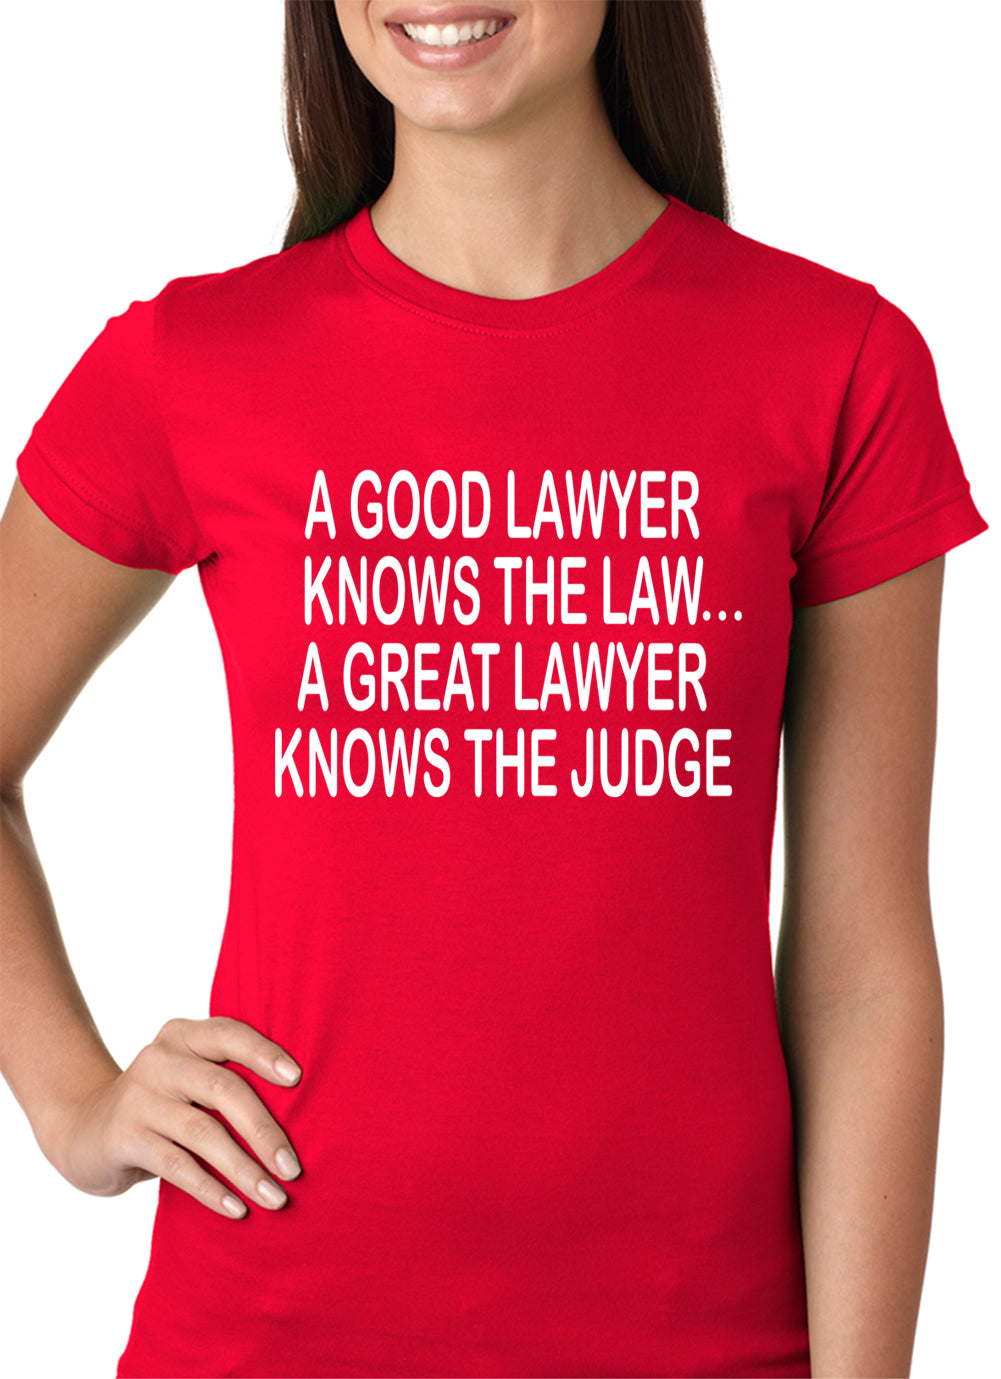 A Good Lawyer Girls T-shirt Red